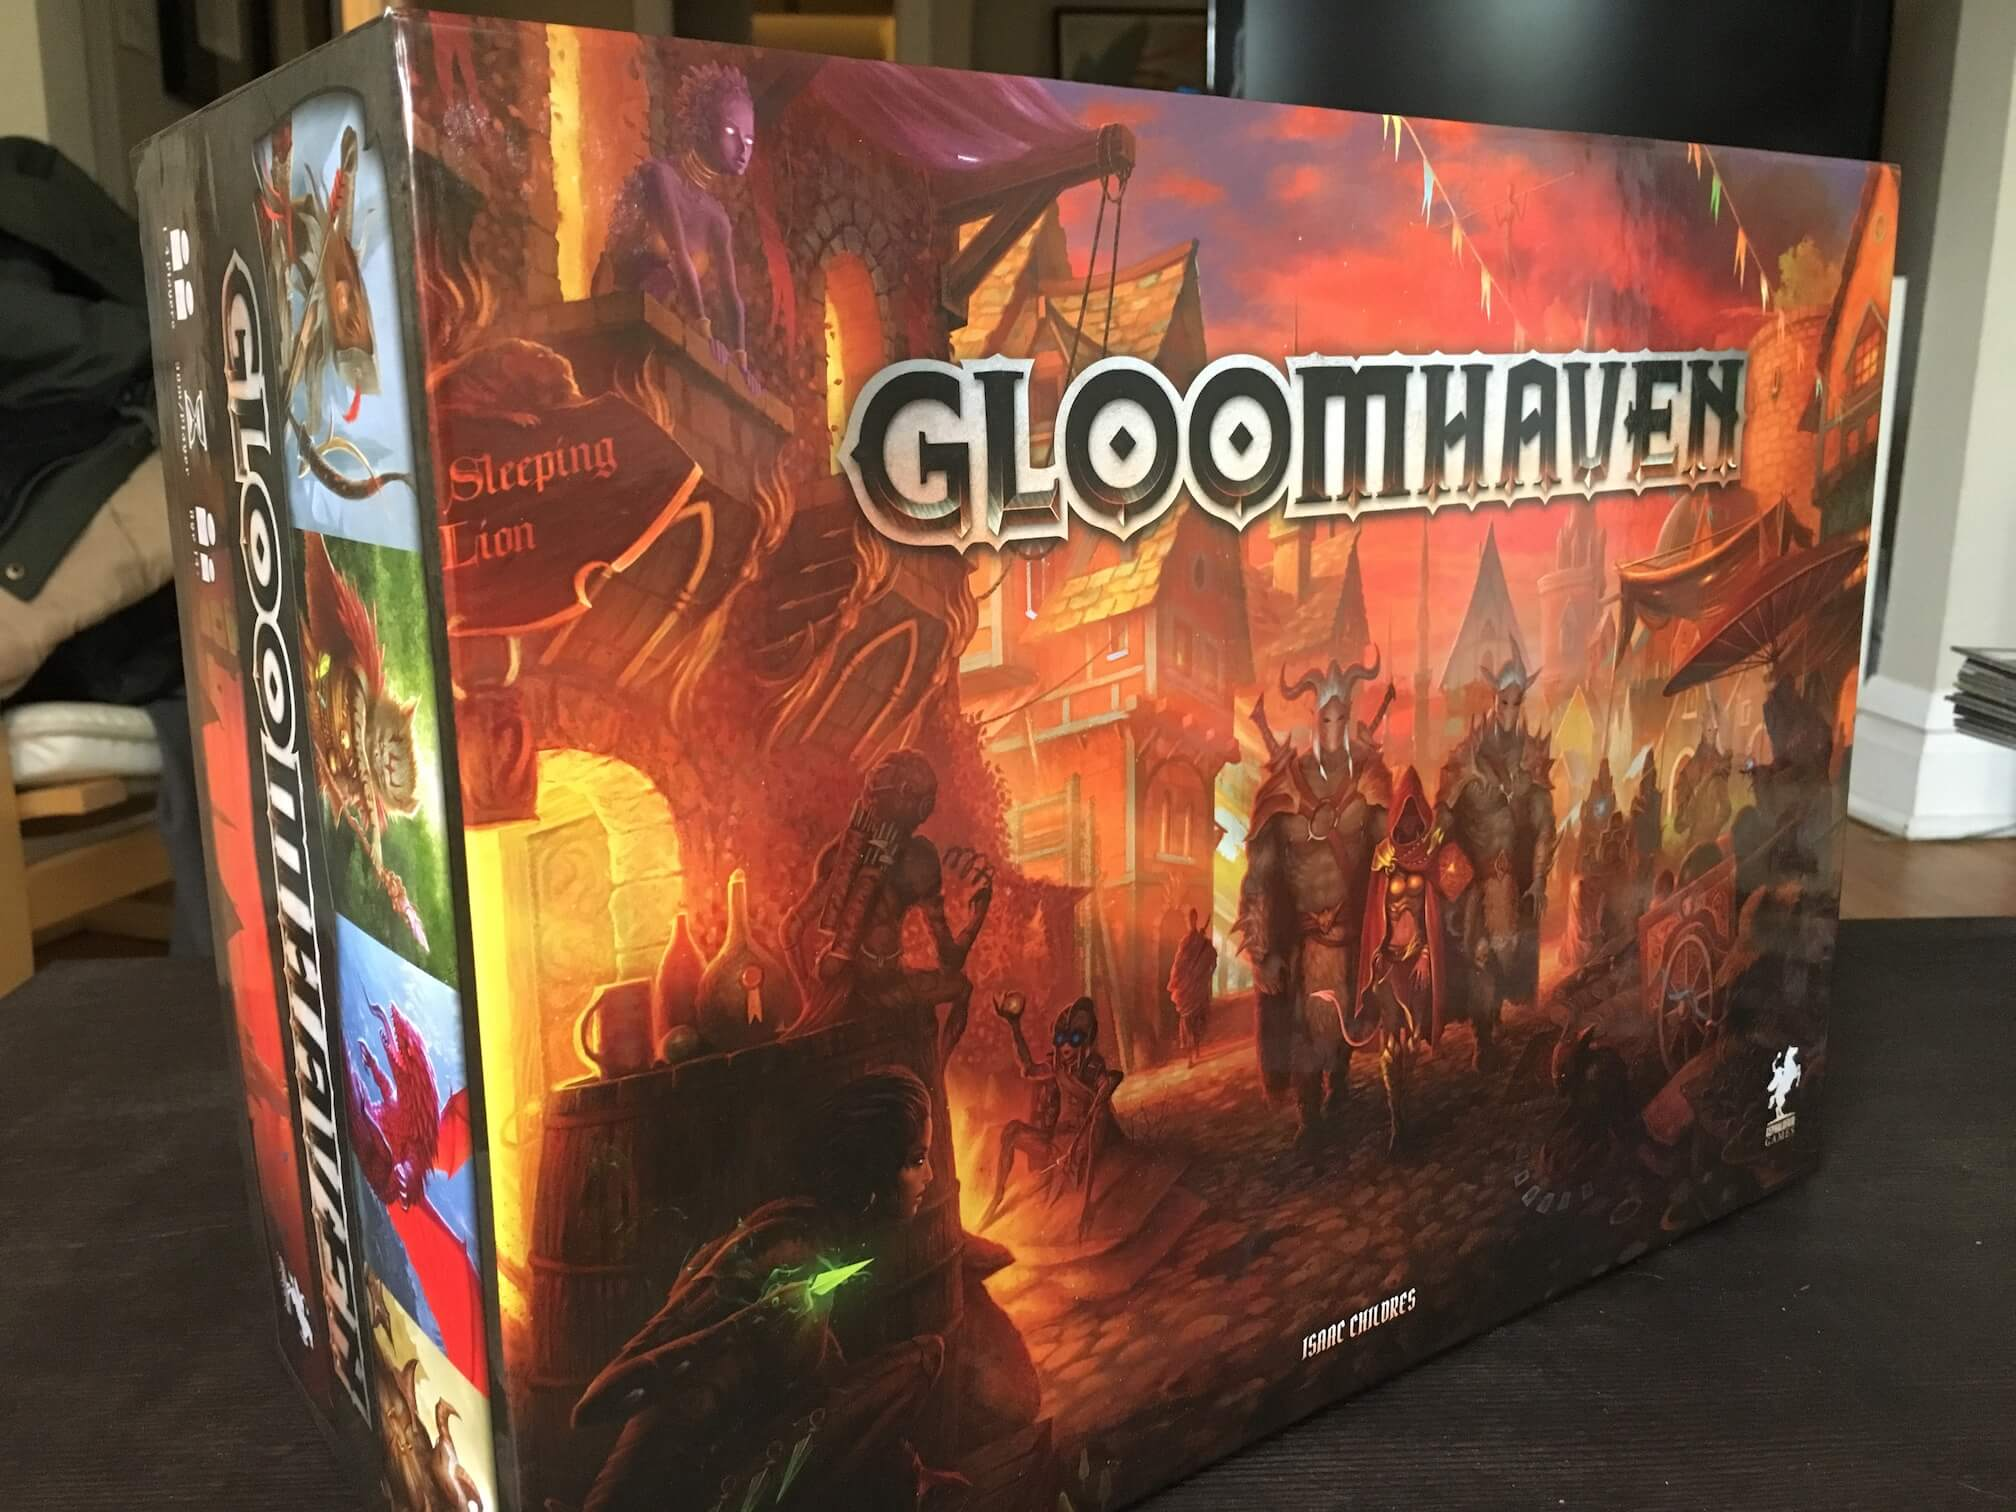 <em>Gloomhaven</em> is massive, both physically and mechanically, but it's an excellent dungeon crawl if you're willing to put the time into it.